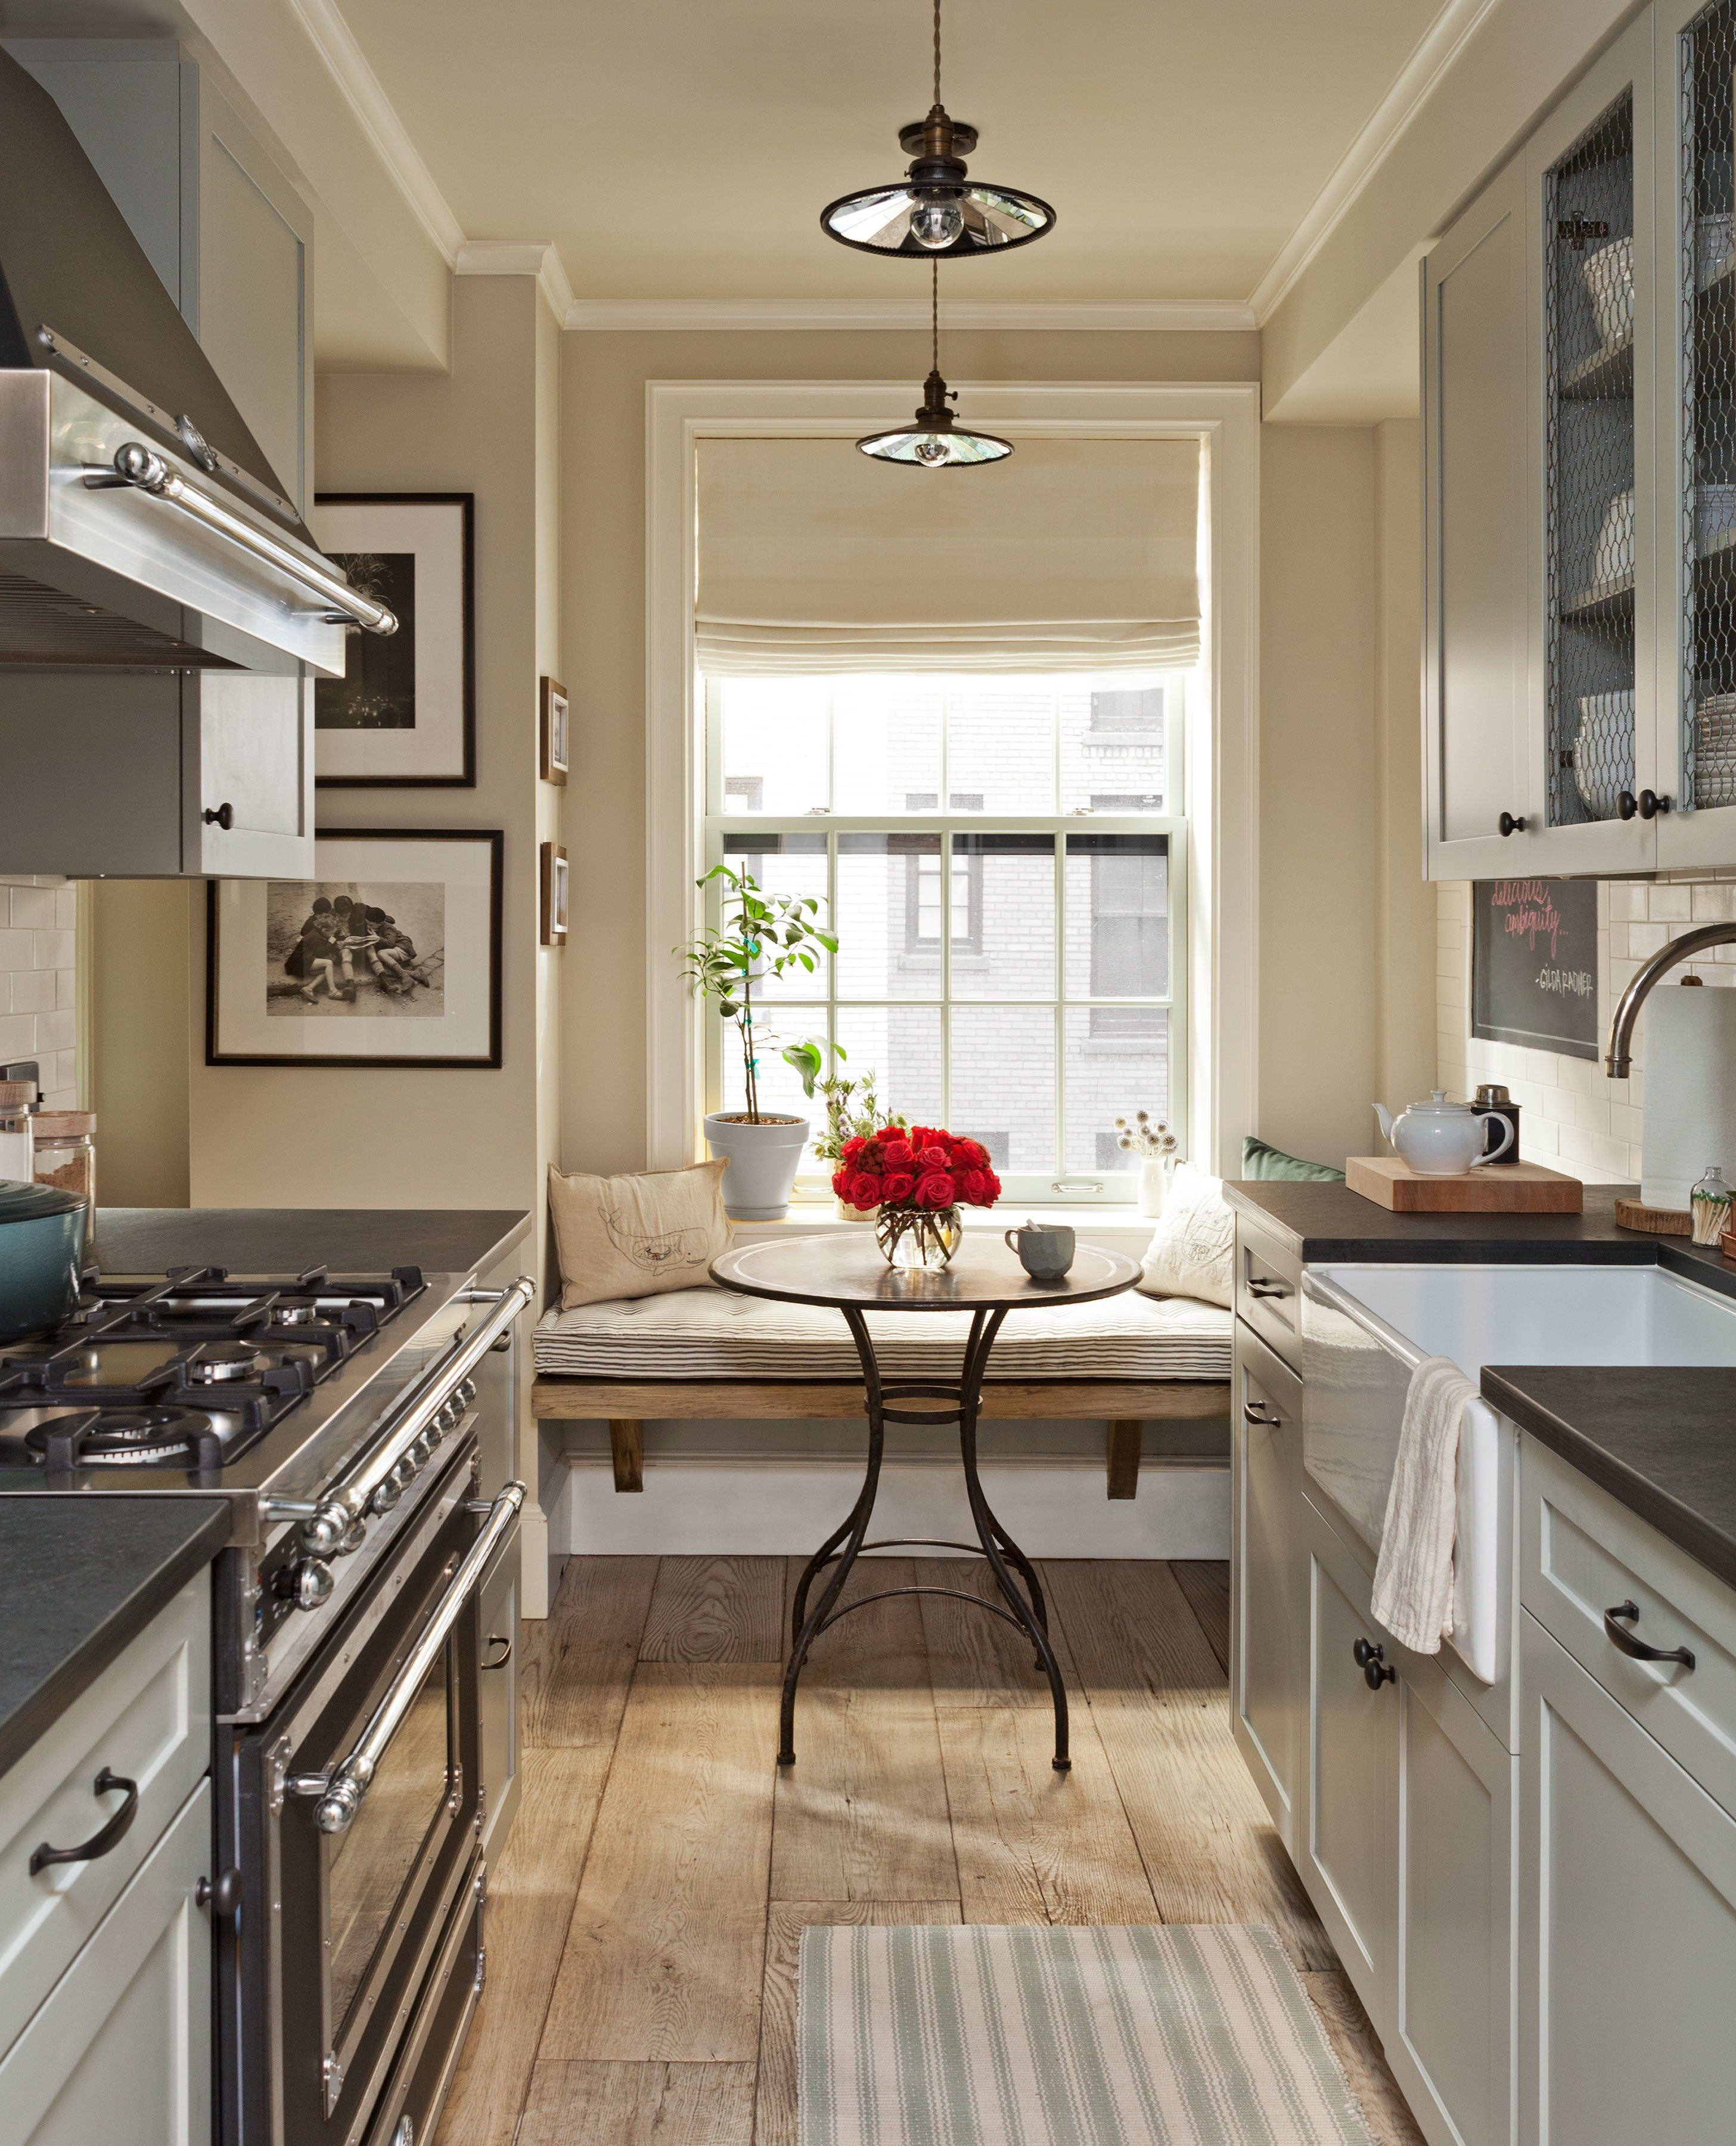 5 Tips to Make Your Small Kitchen Feel Large | Kitchen designs ...